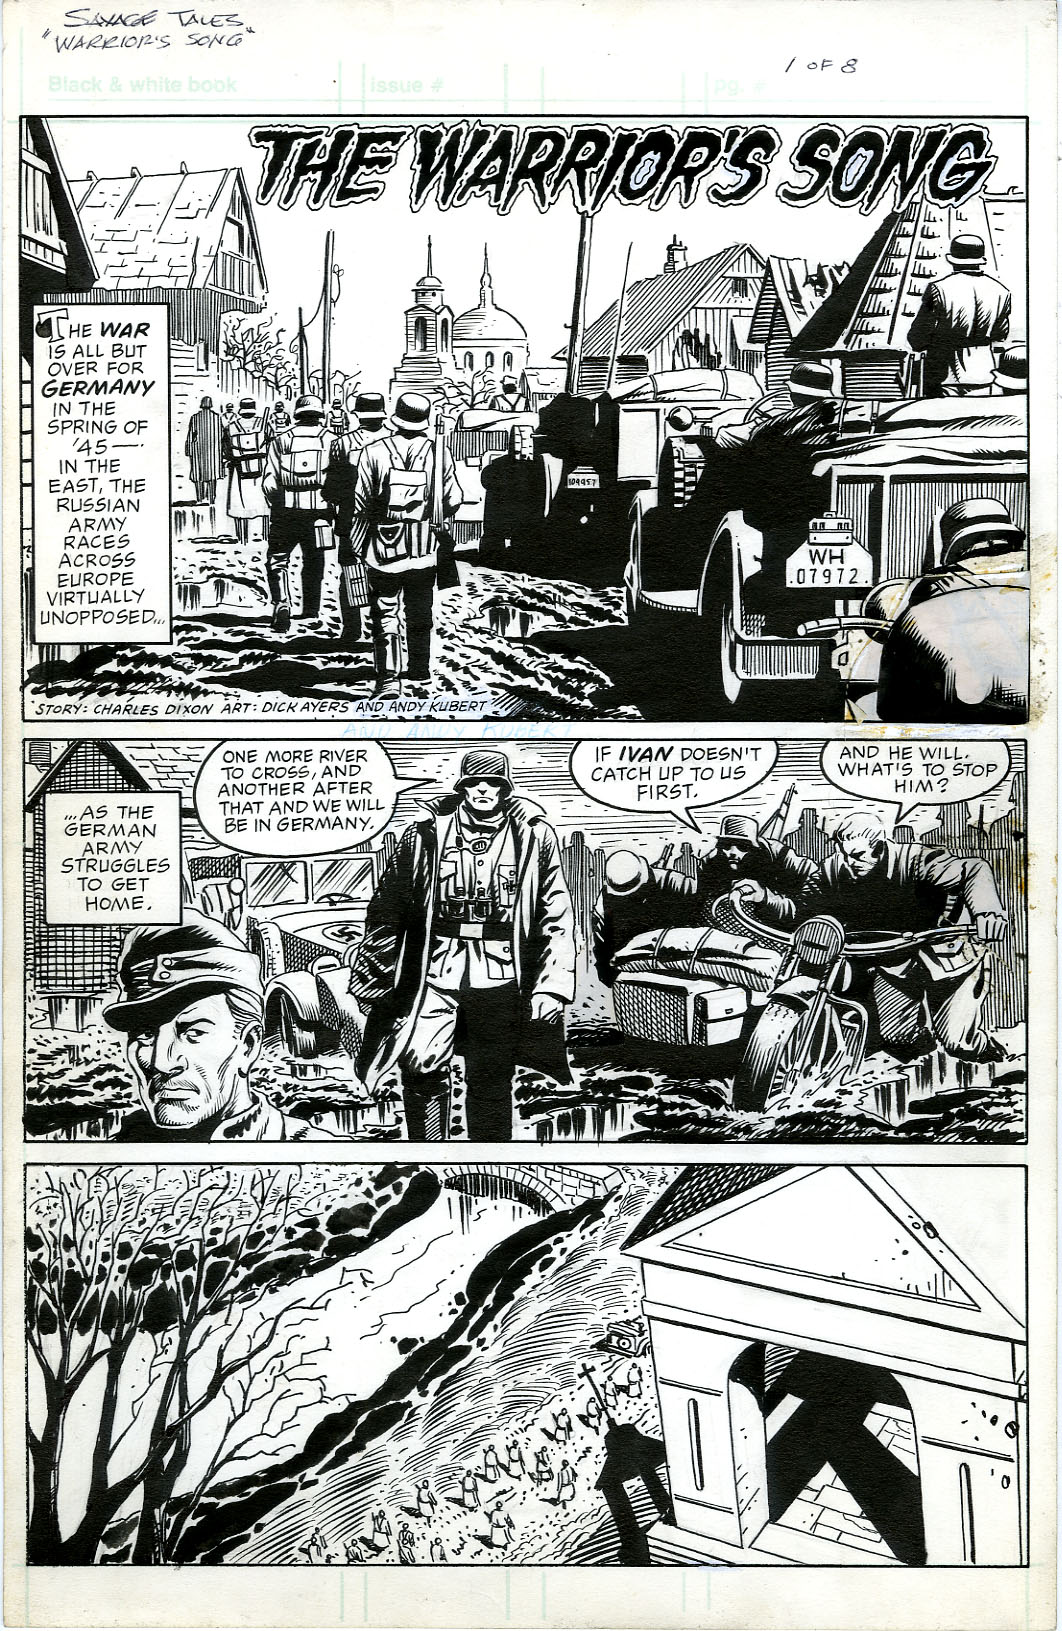 DICK AYERS / ANDY KUBERT - SAVAGE TALES UNPUBLISHED 8-PAGE STORY ORIGINAL ART